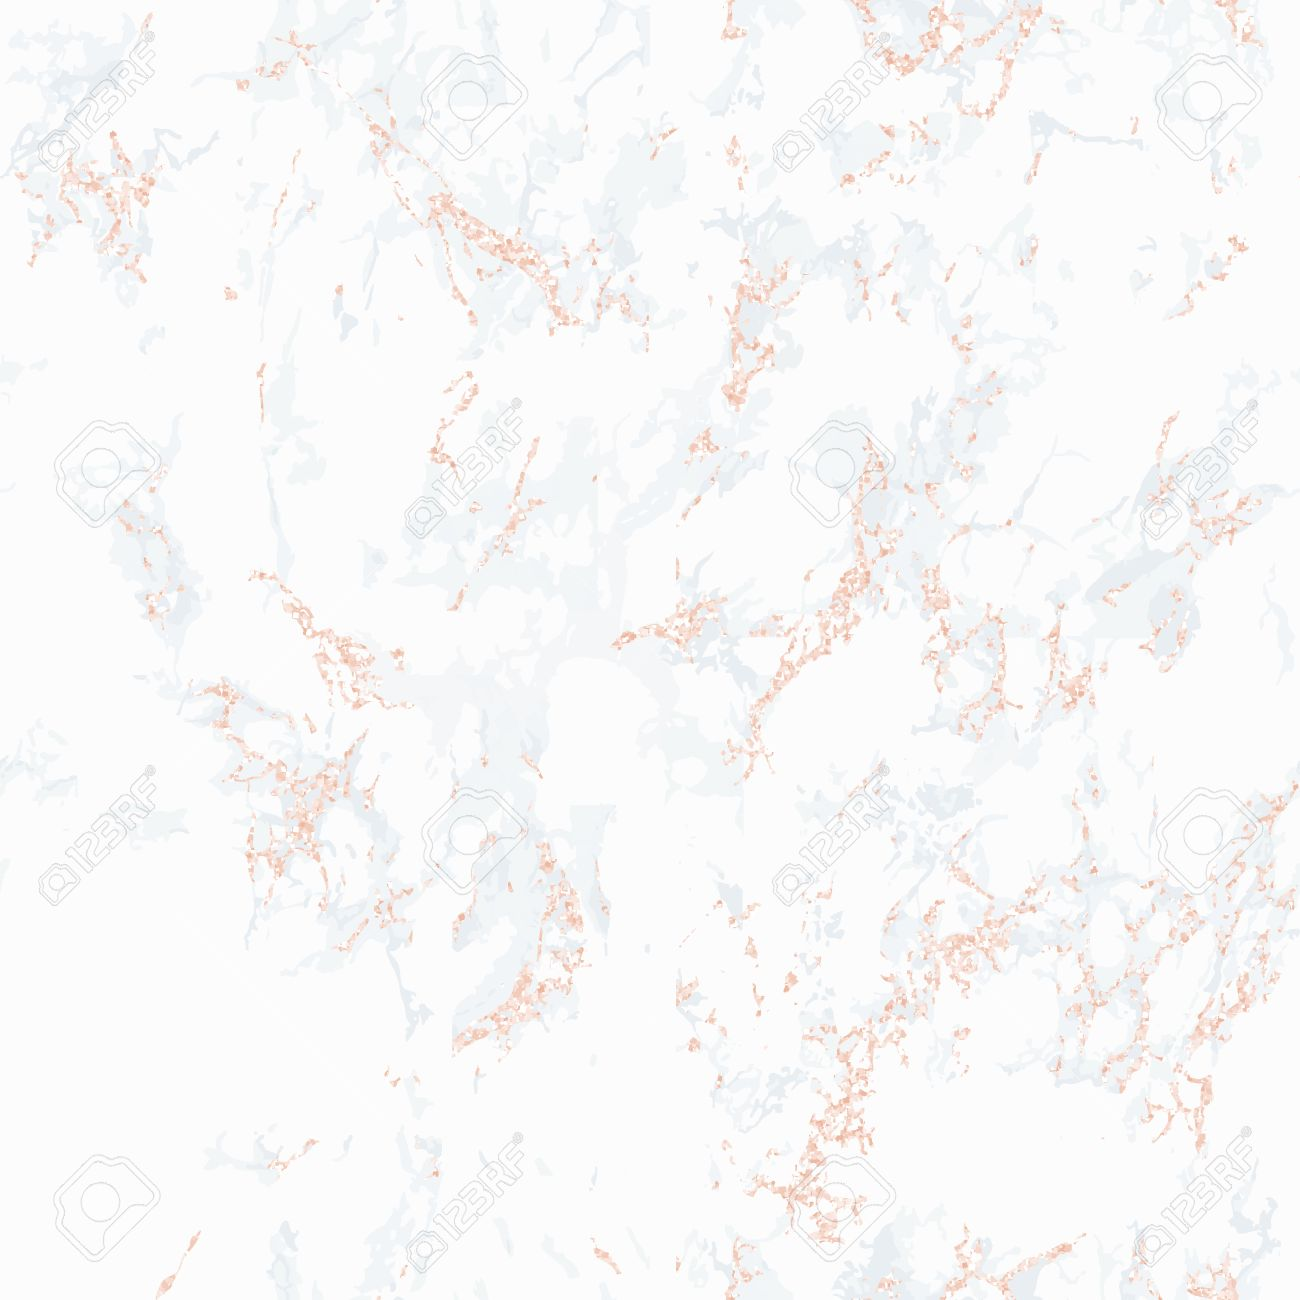 White Marble Texture With Rose Gold. Patina Effect. Seamless Pattern.  Overlay Distress Grain